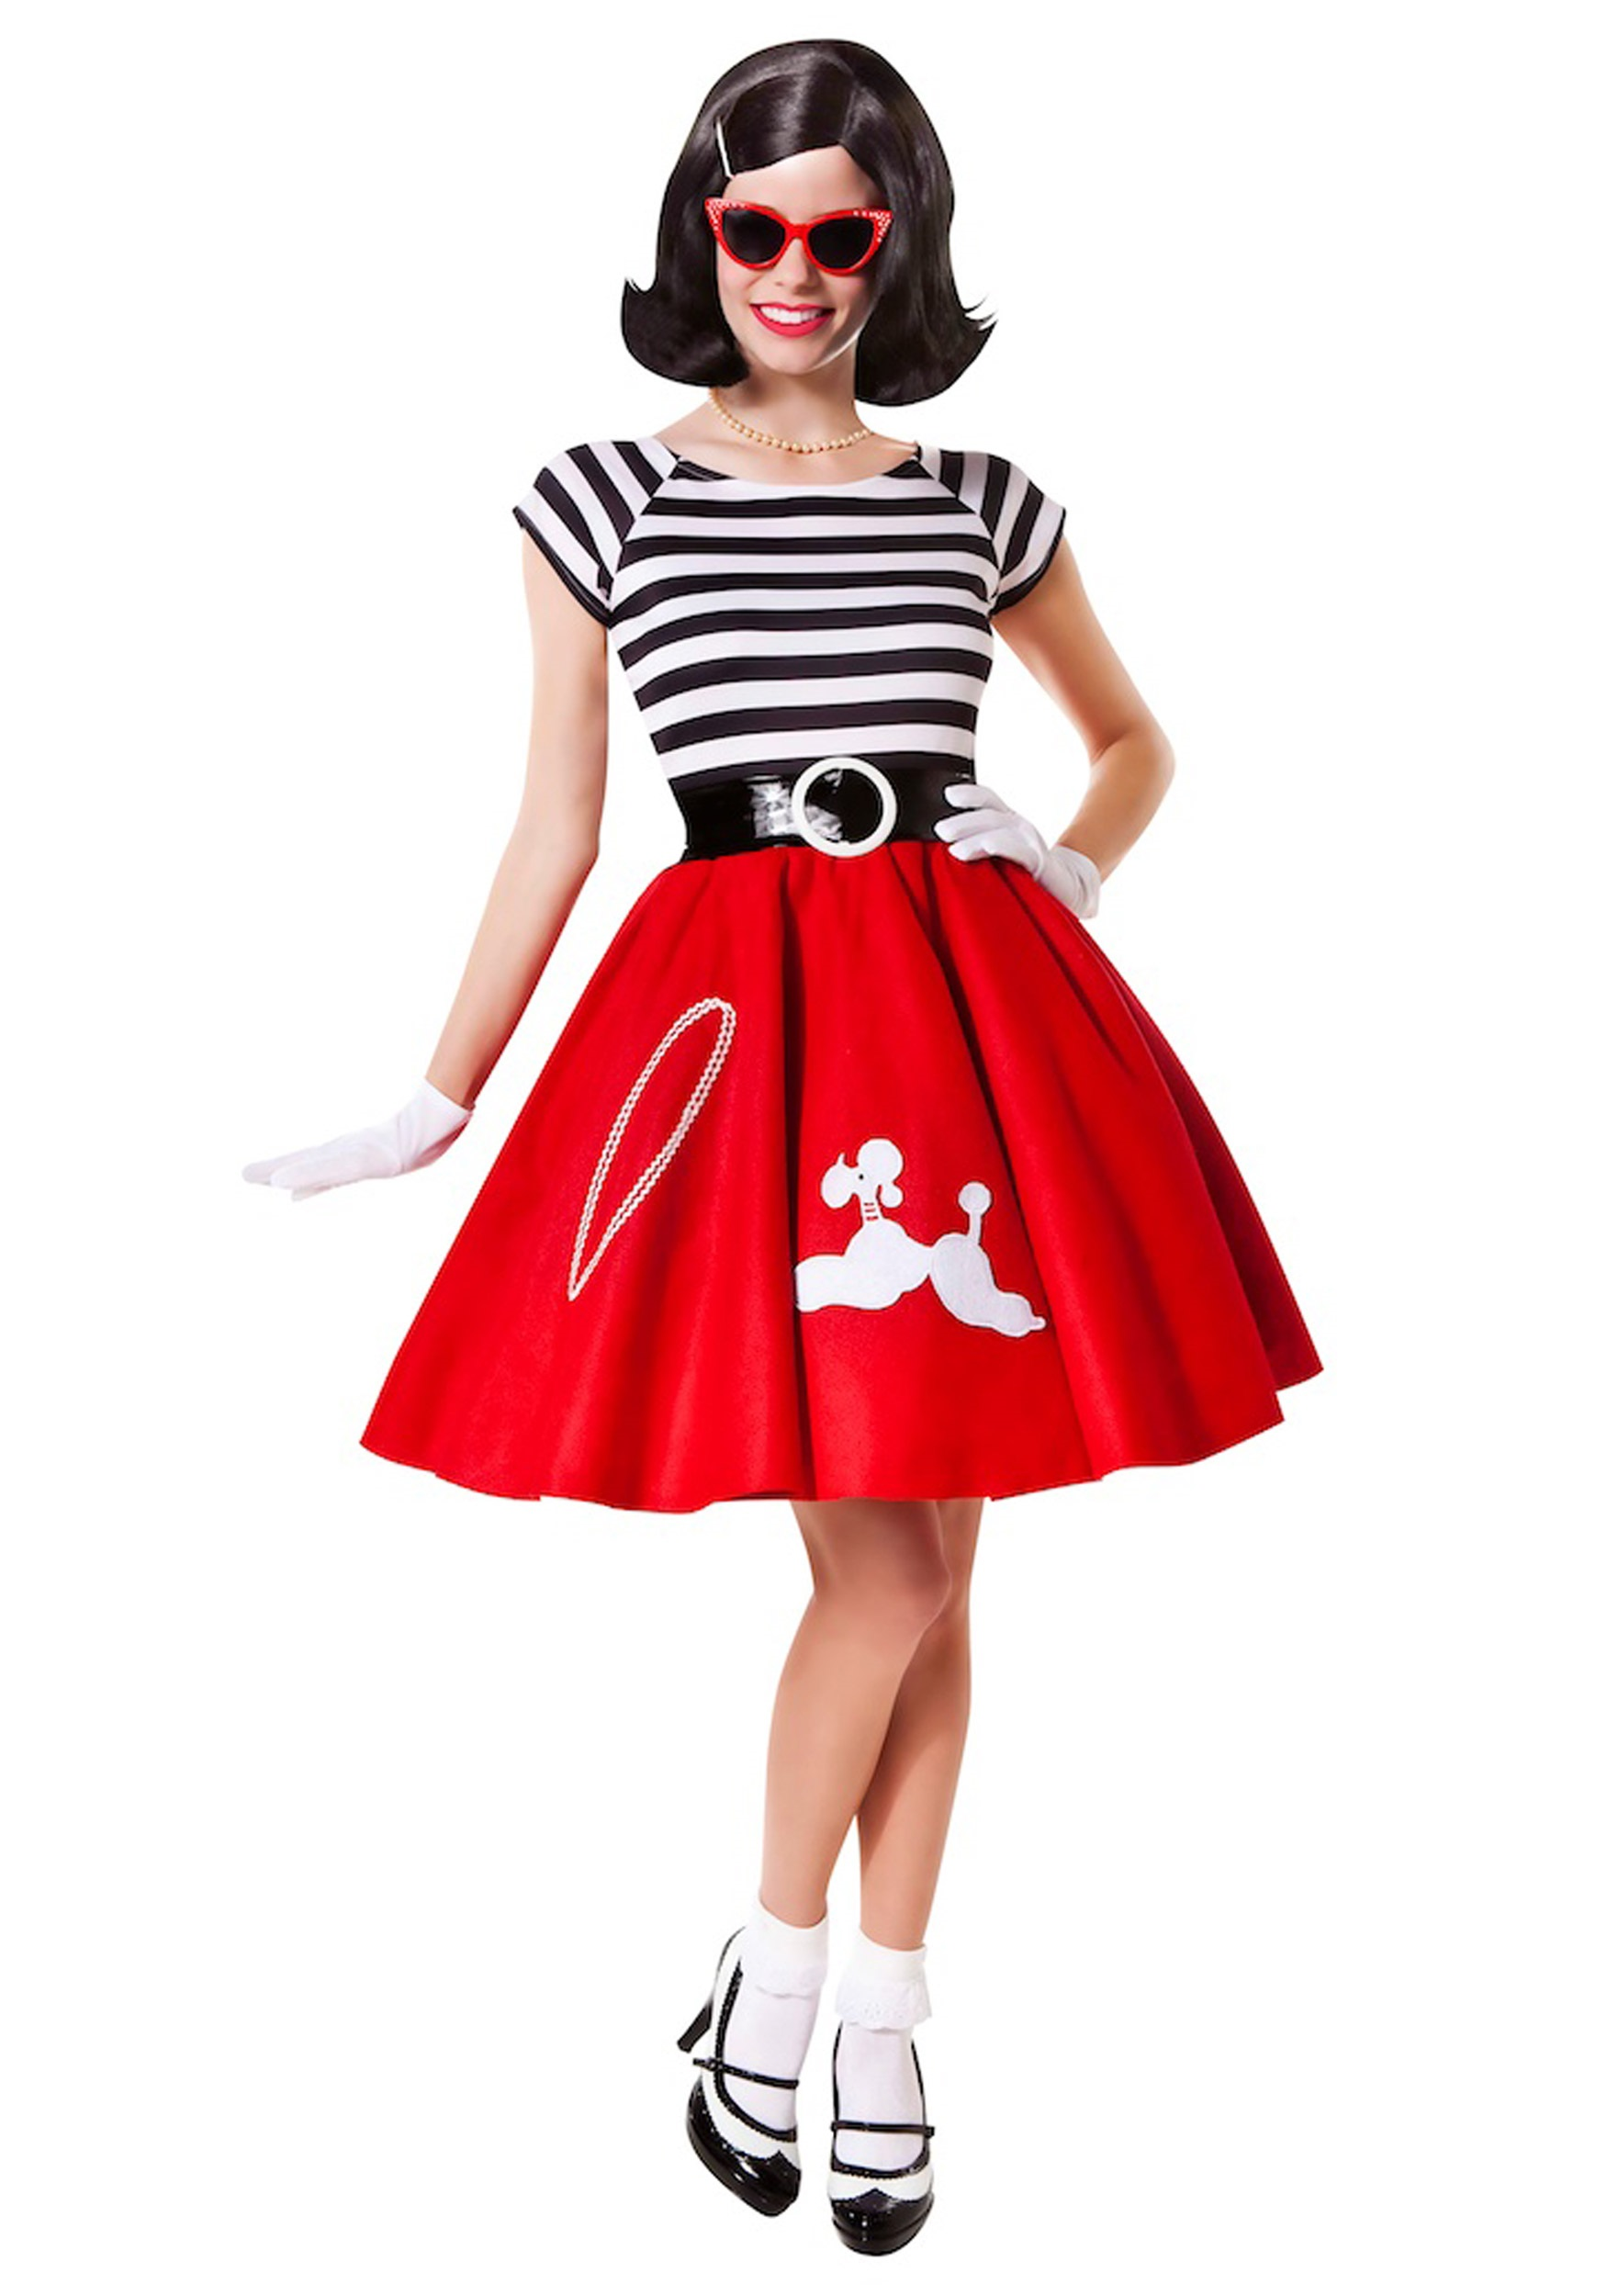 50s Ooh La La Red Poodle Skirt w/ Striped Top  sc 1 st  Halloween Costumes : best halloween costumes for ladies  - Germanpascual.Com